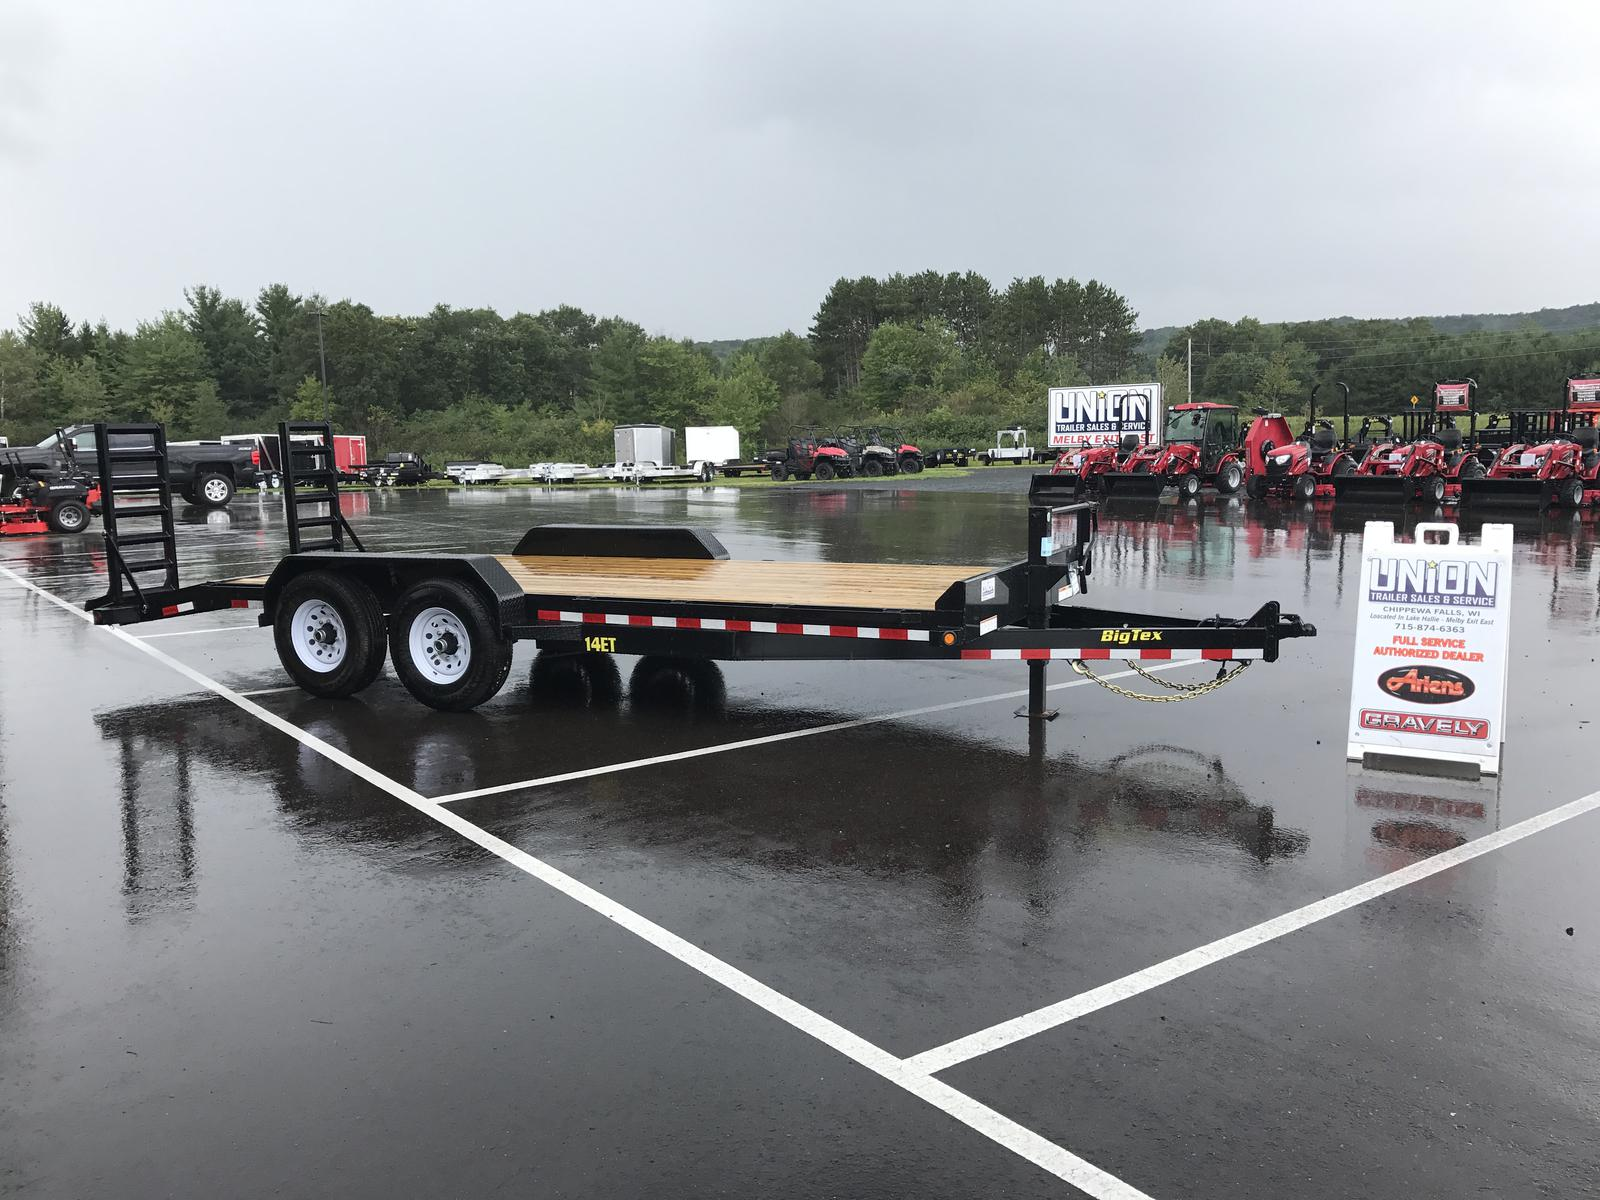 Inventory from Big Tex Trailers and BOB-CAT® Union Trailer